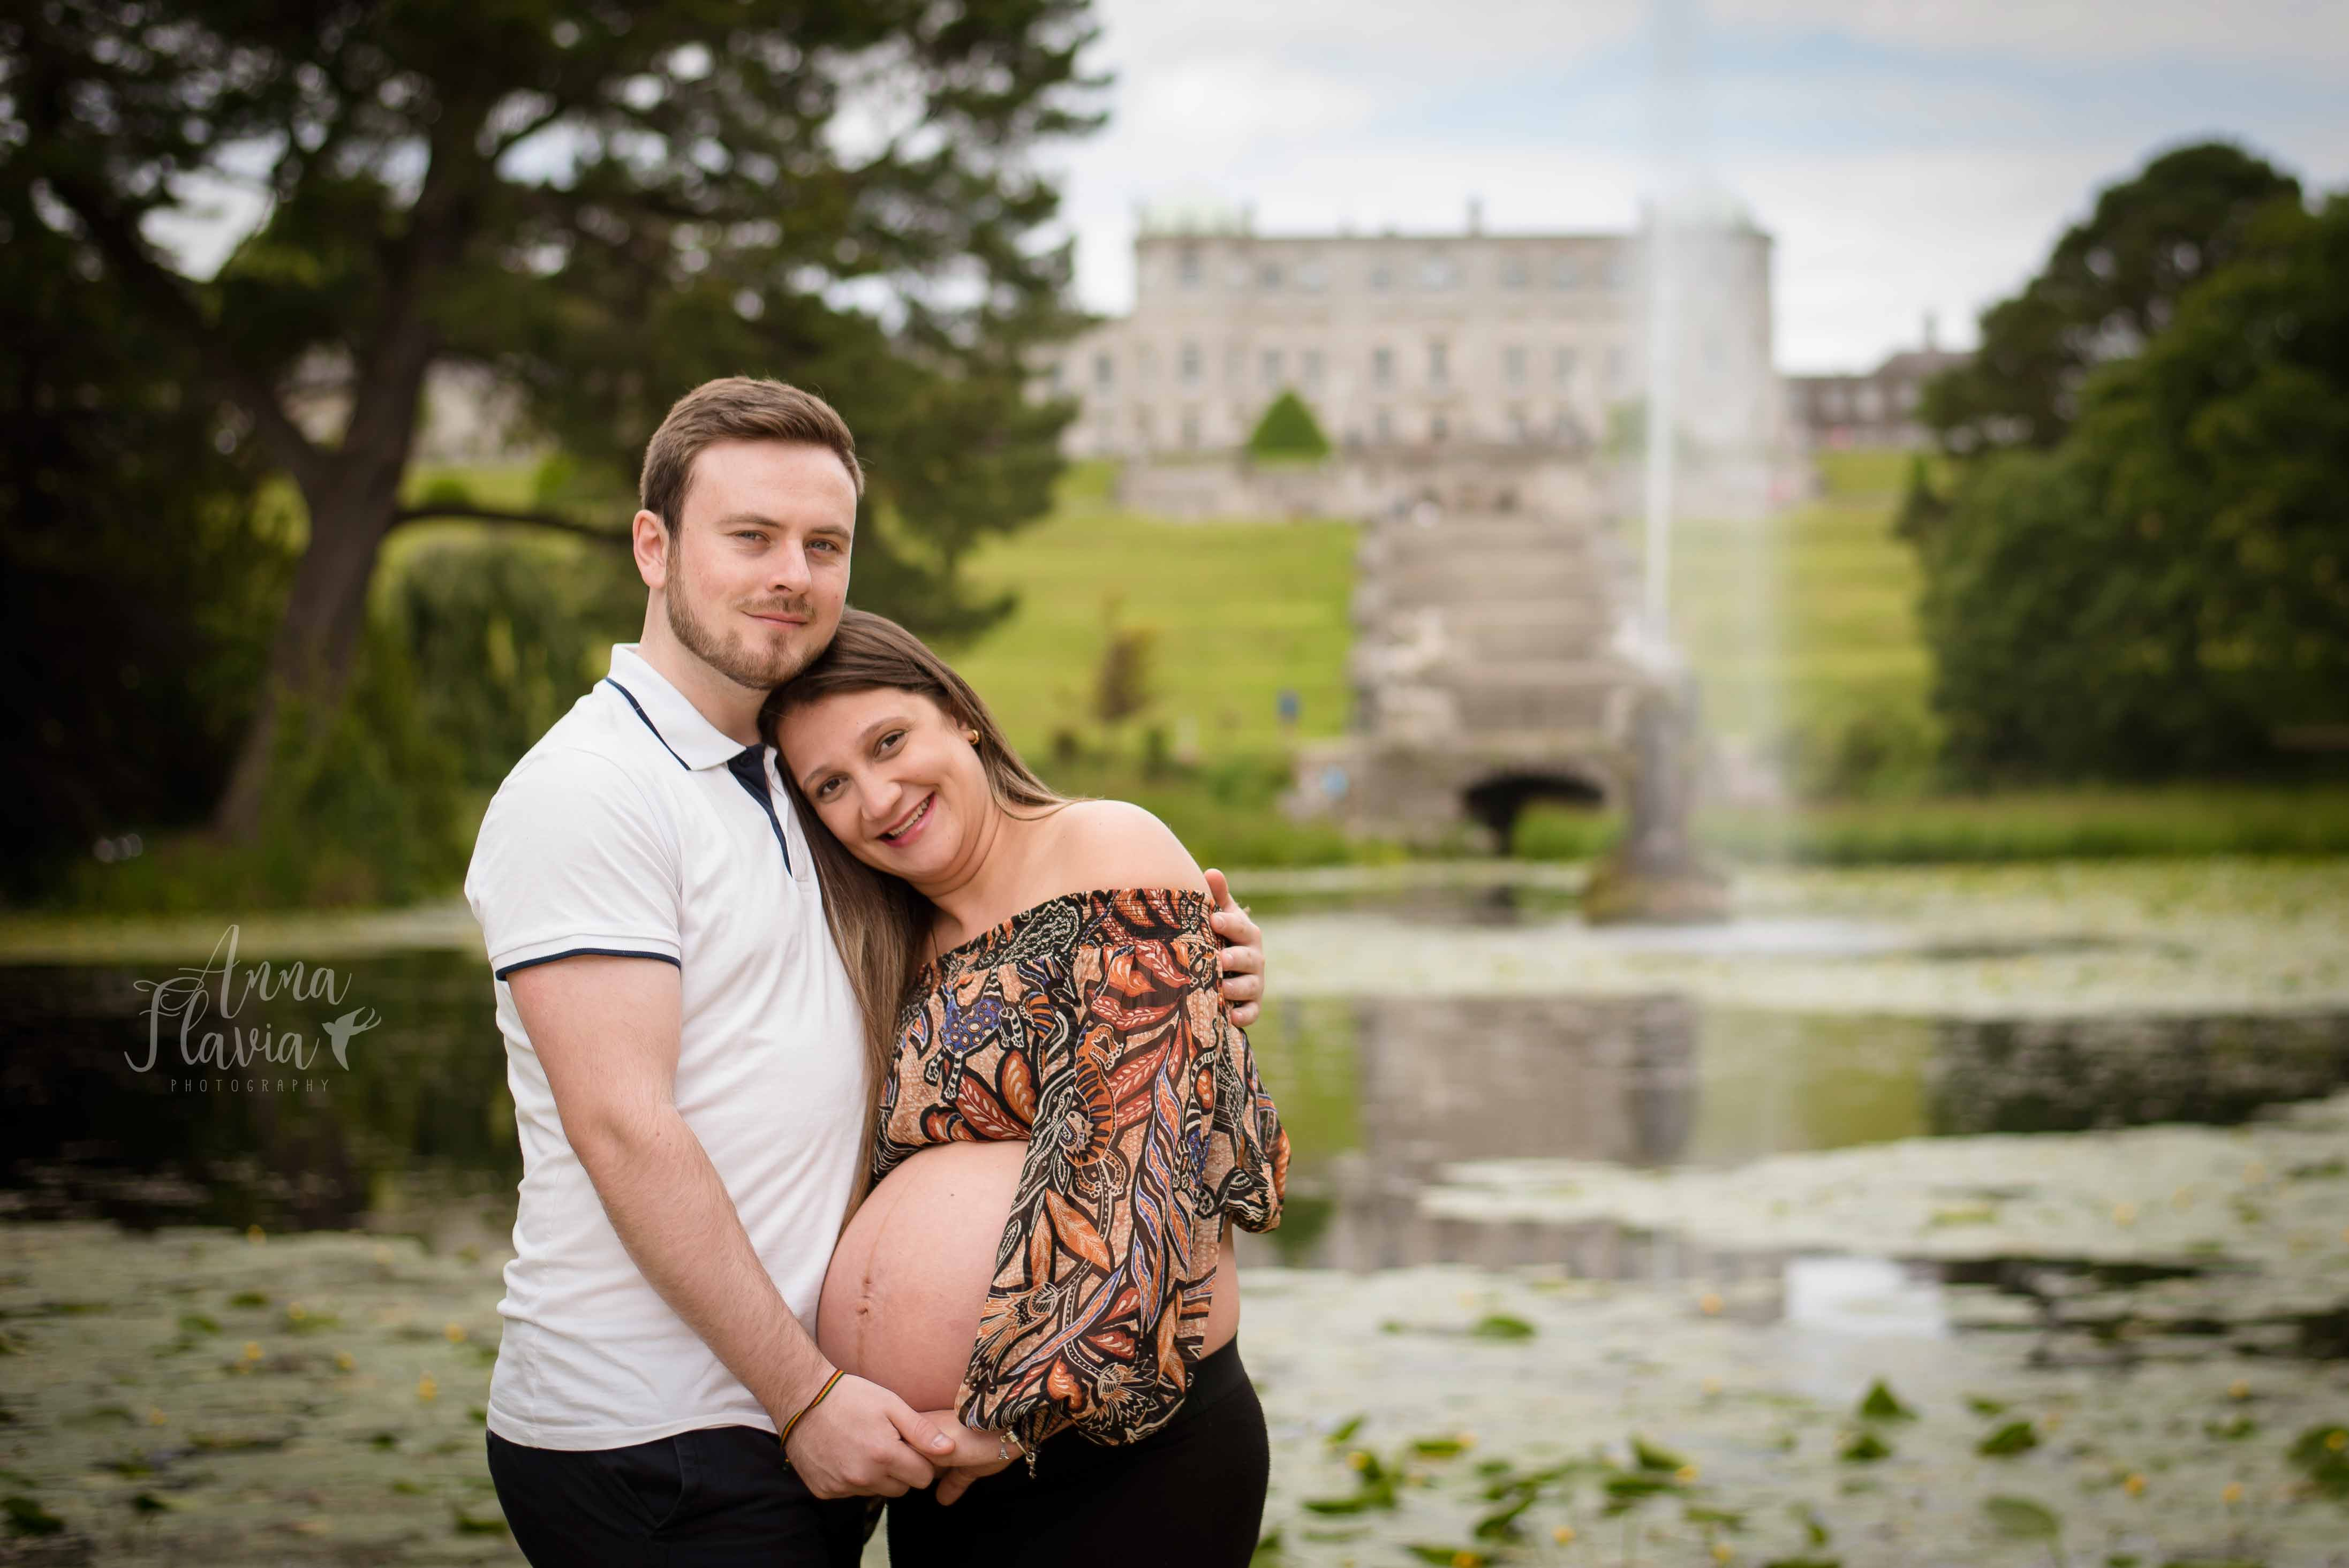 photographer_dublin_anna_flavia_maternity_newborn_family_10